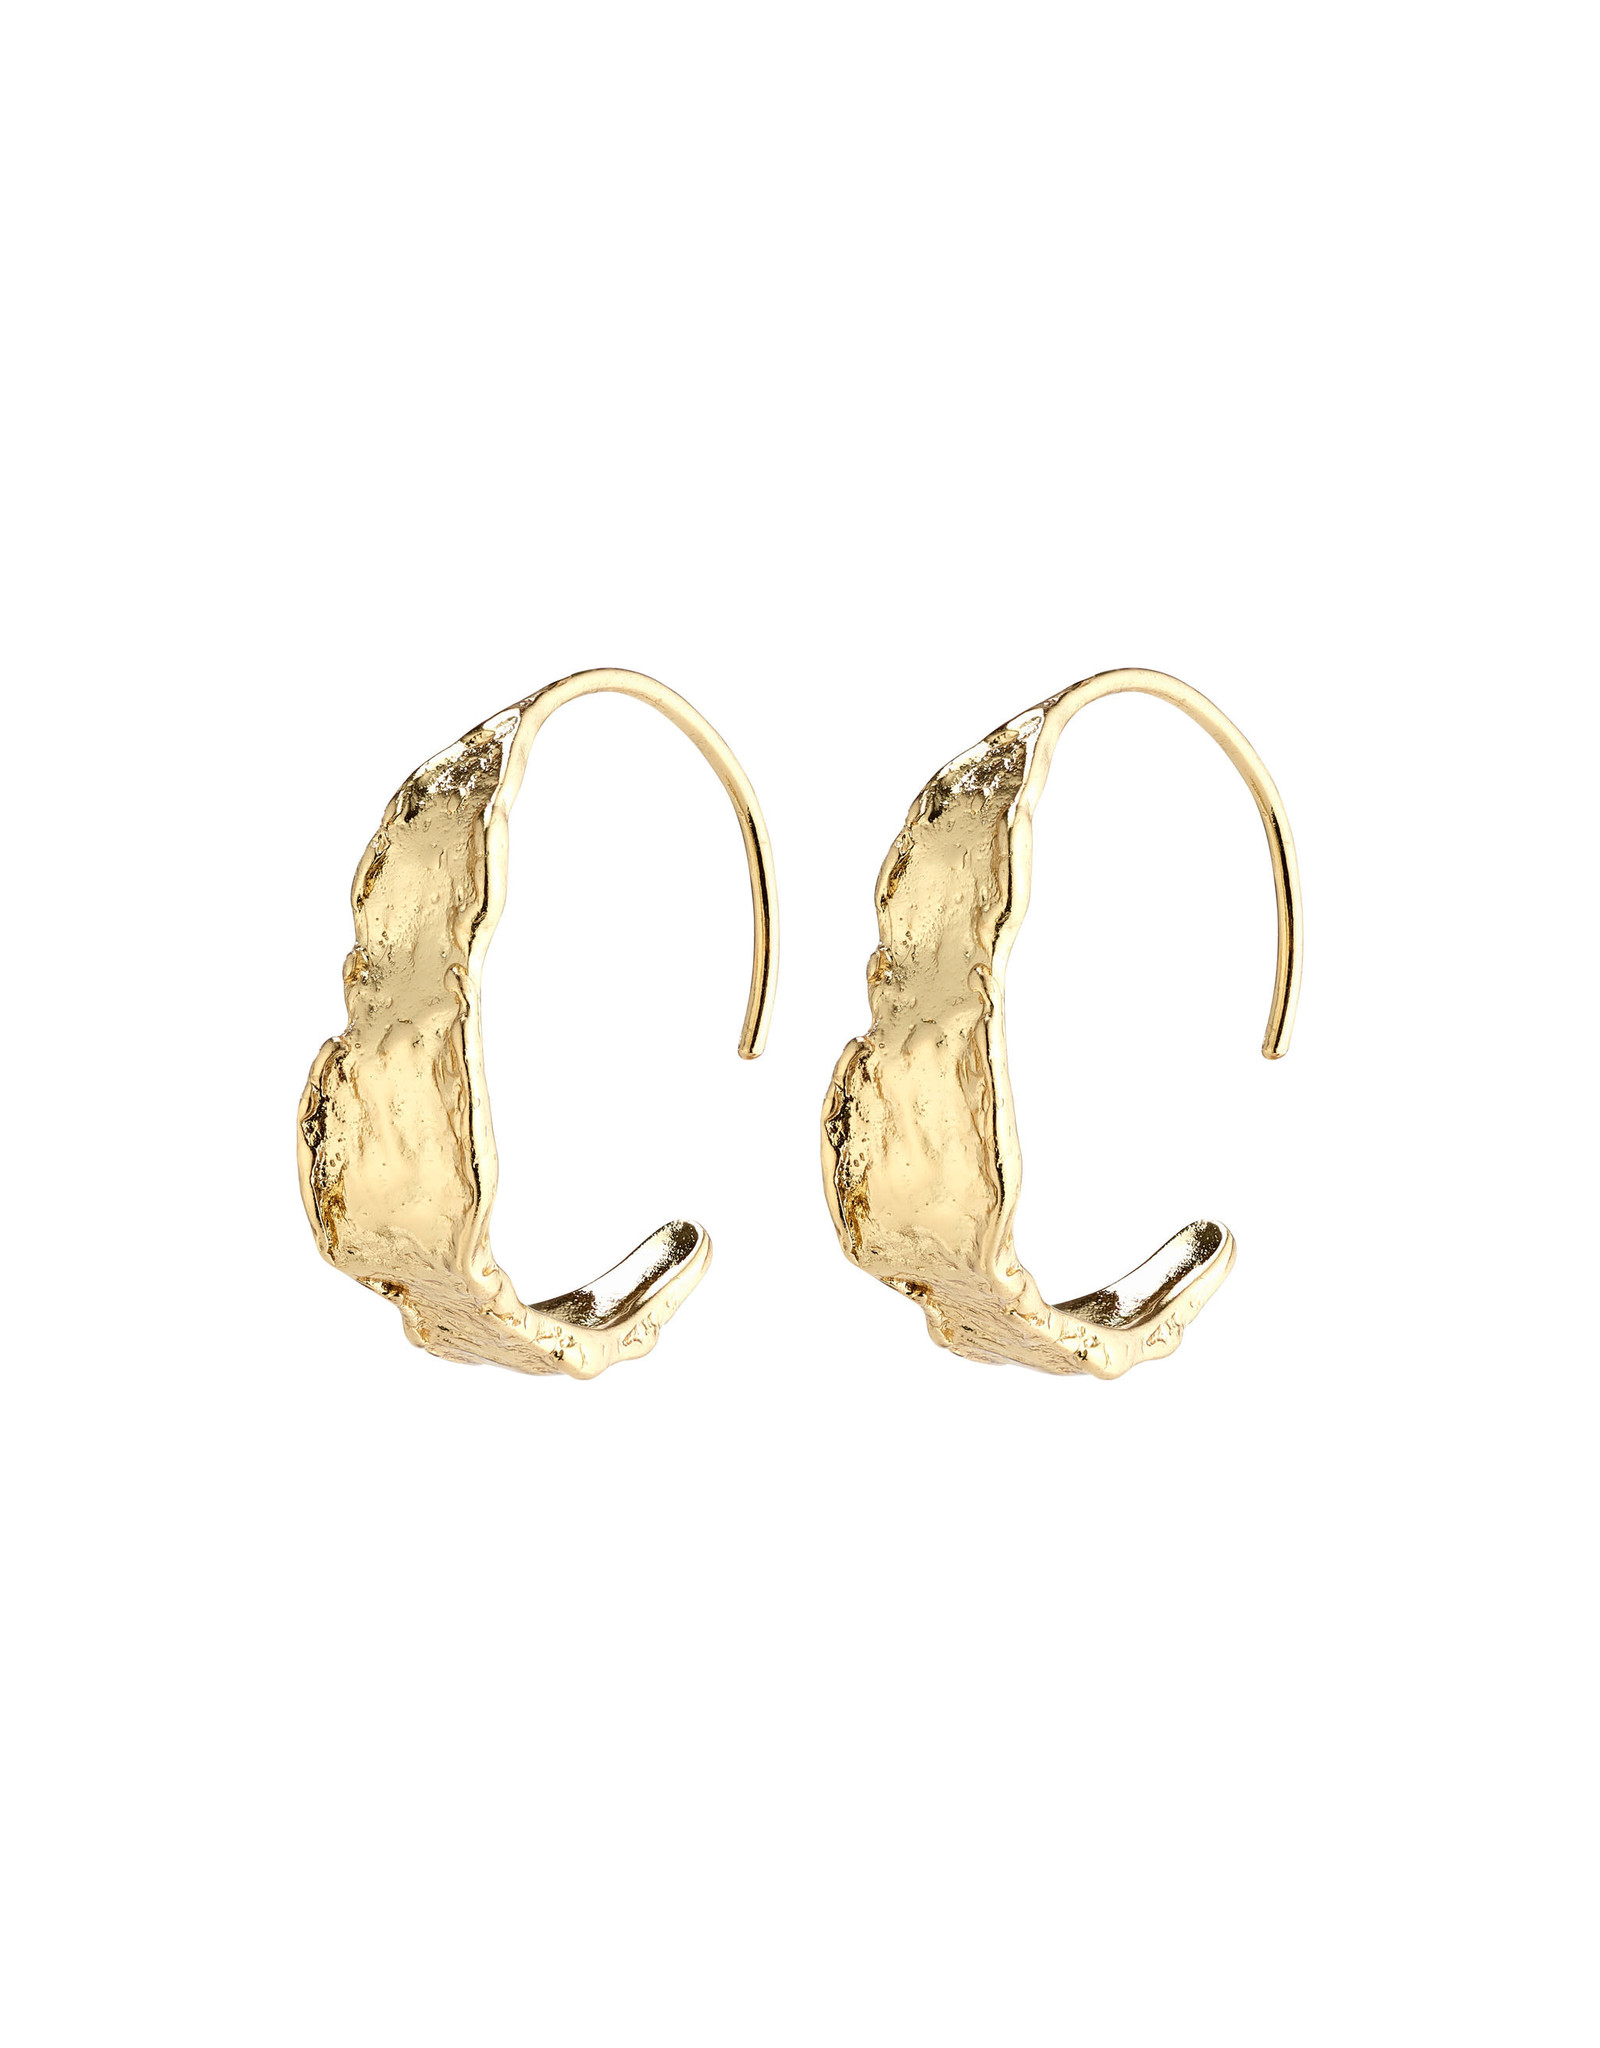 Pilgrim Earrings Compass Hoops, Gold Plated